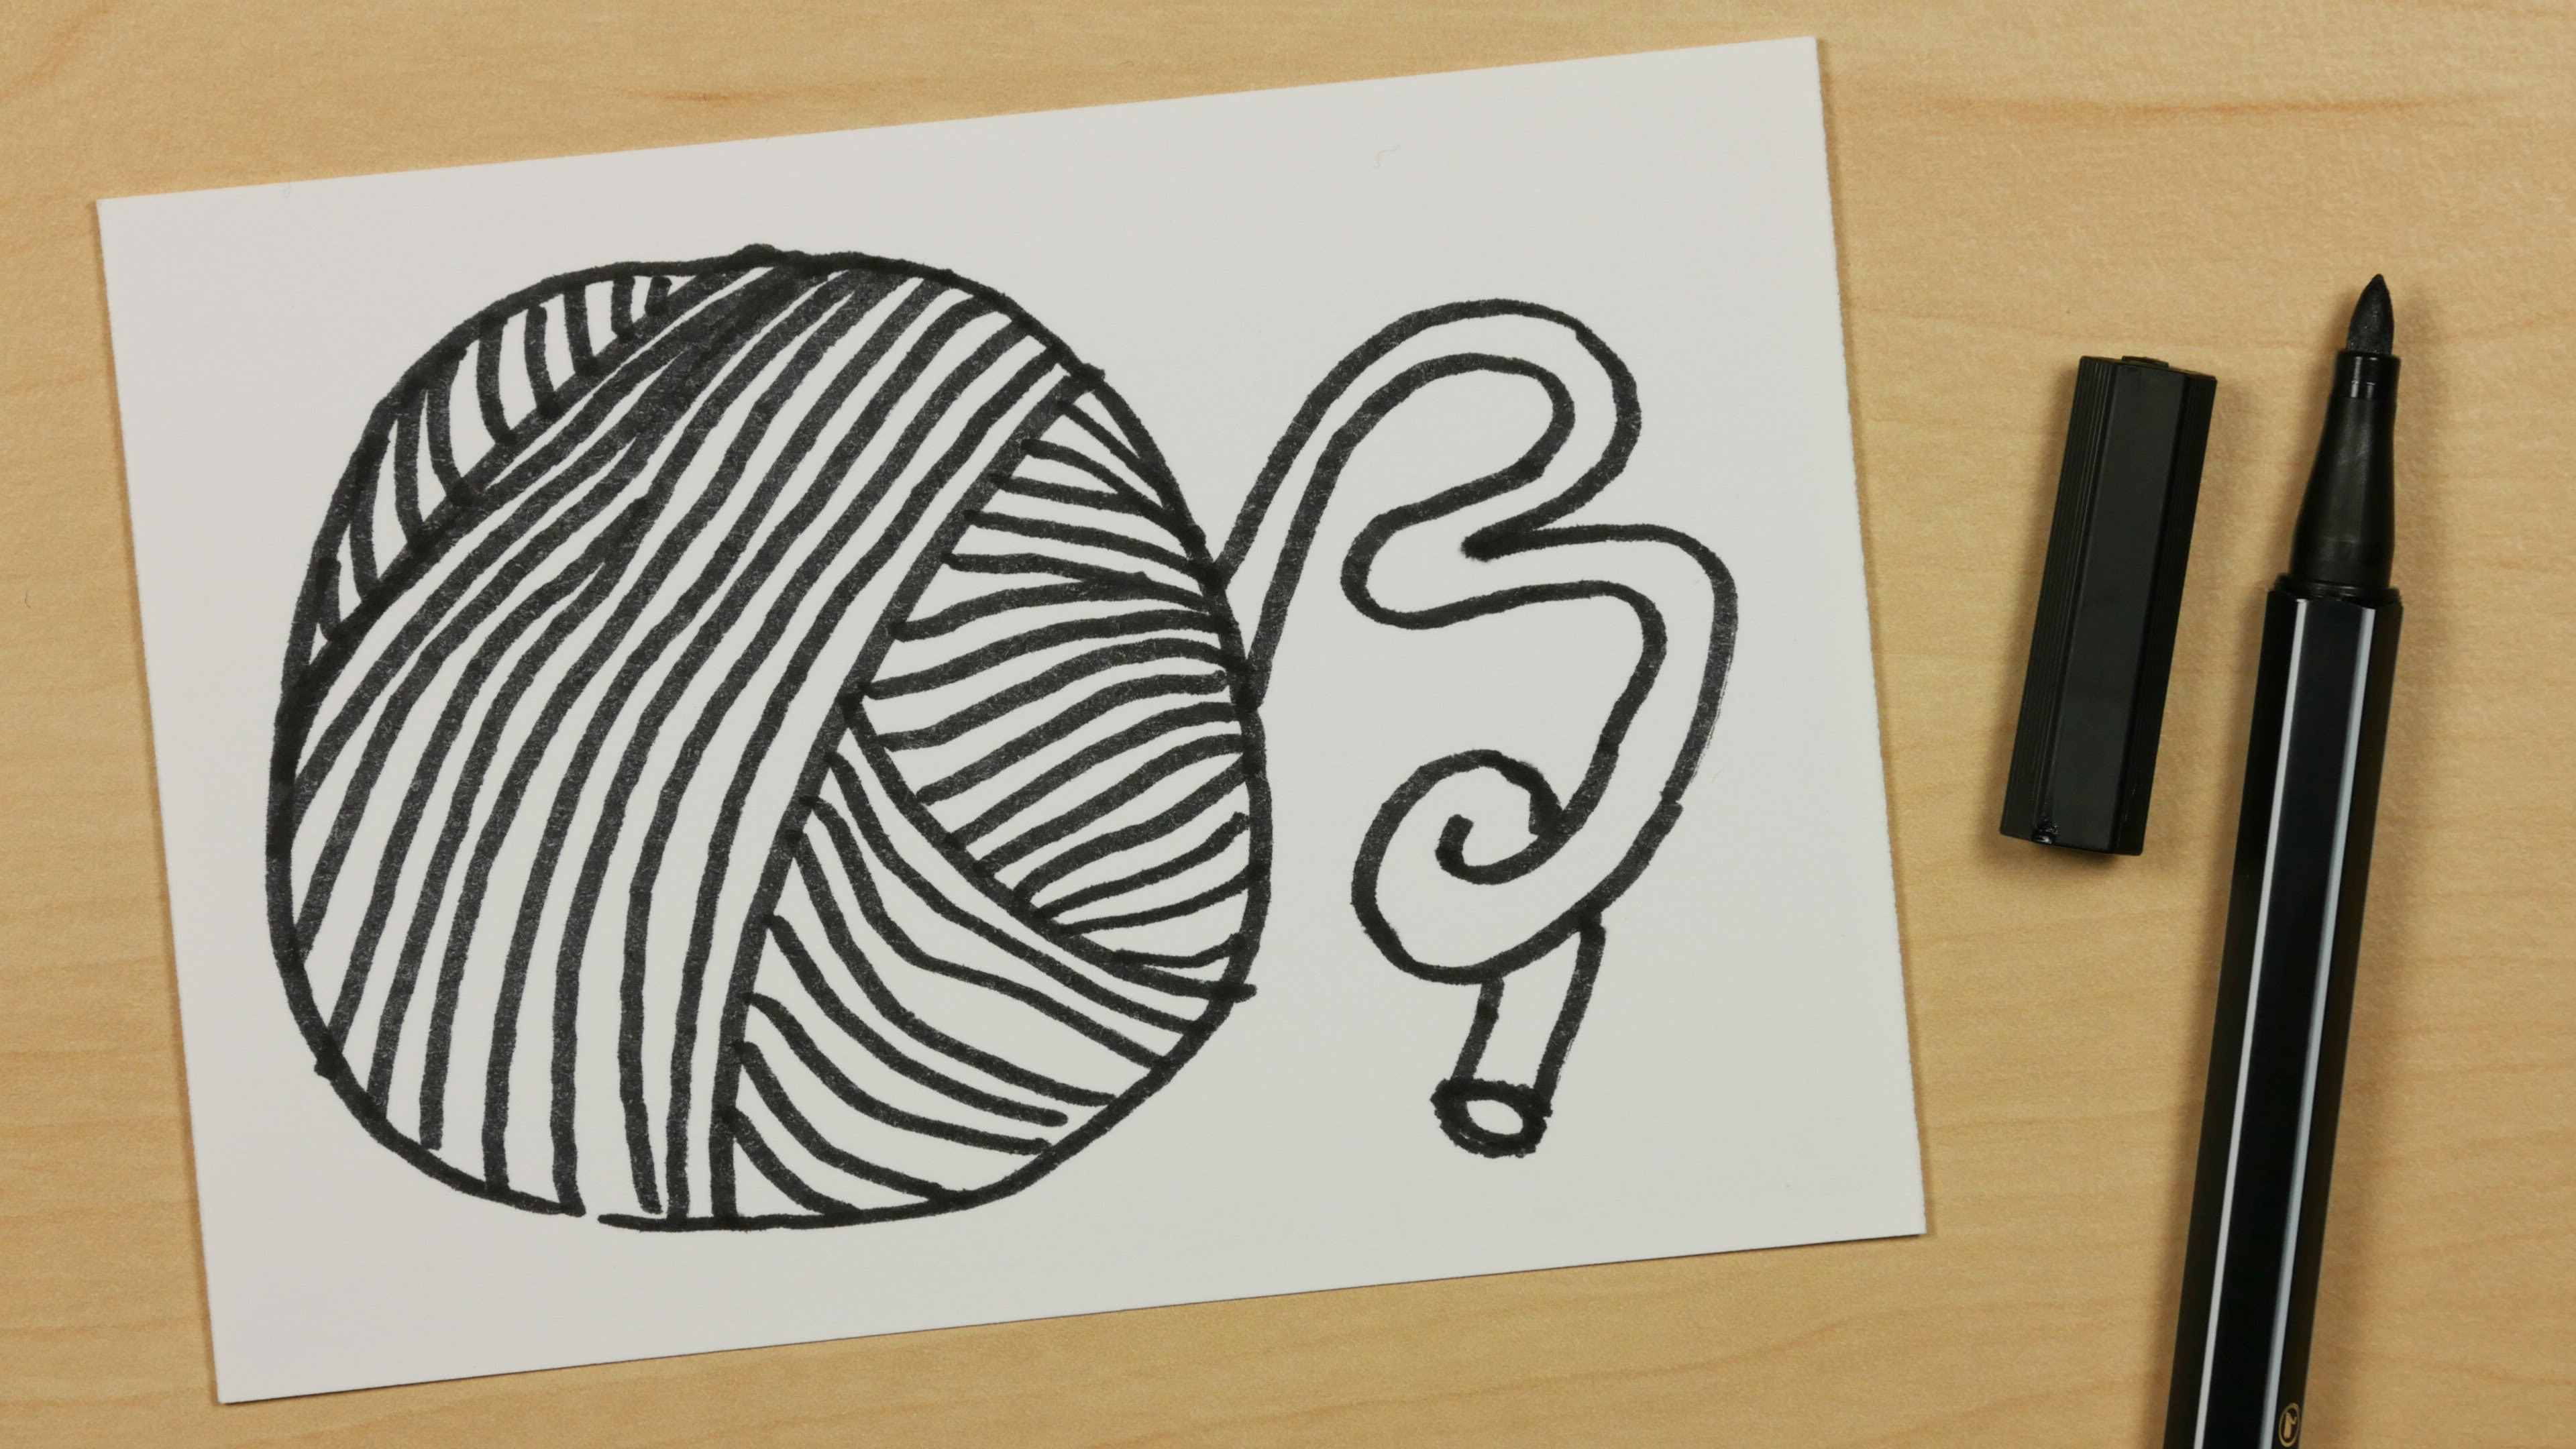 3840x2160 How To Draw A Wool Or Yarn